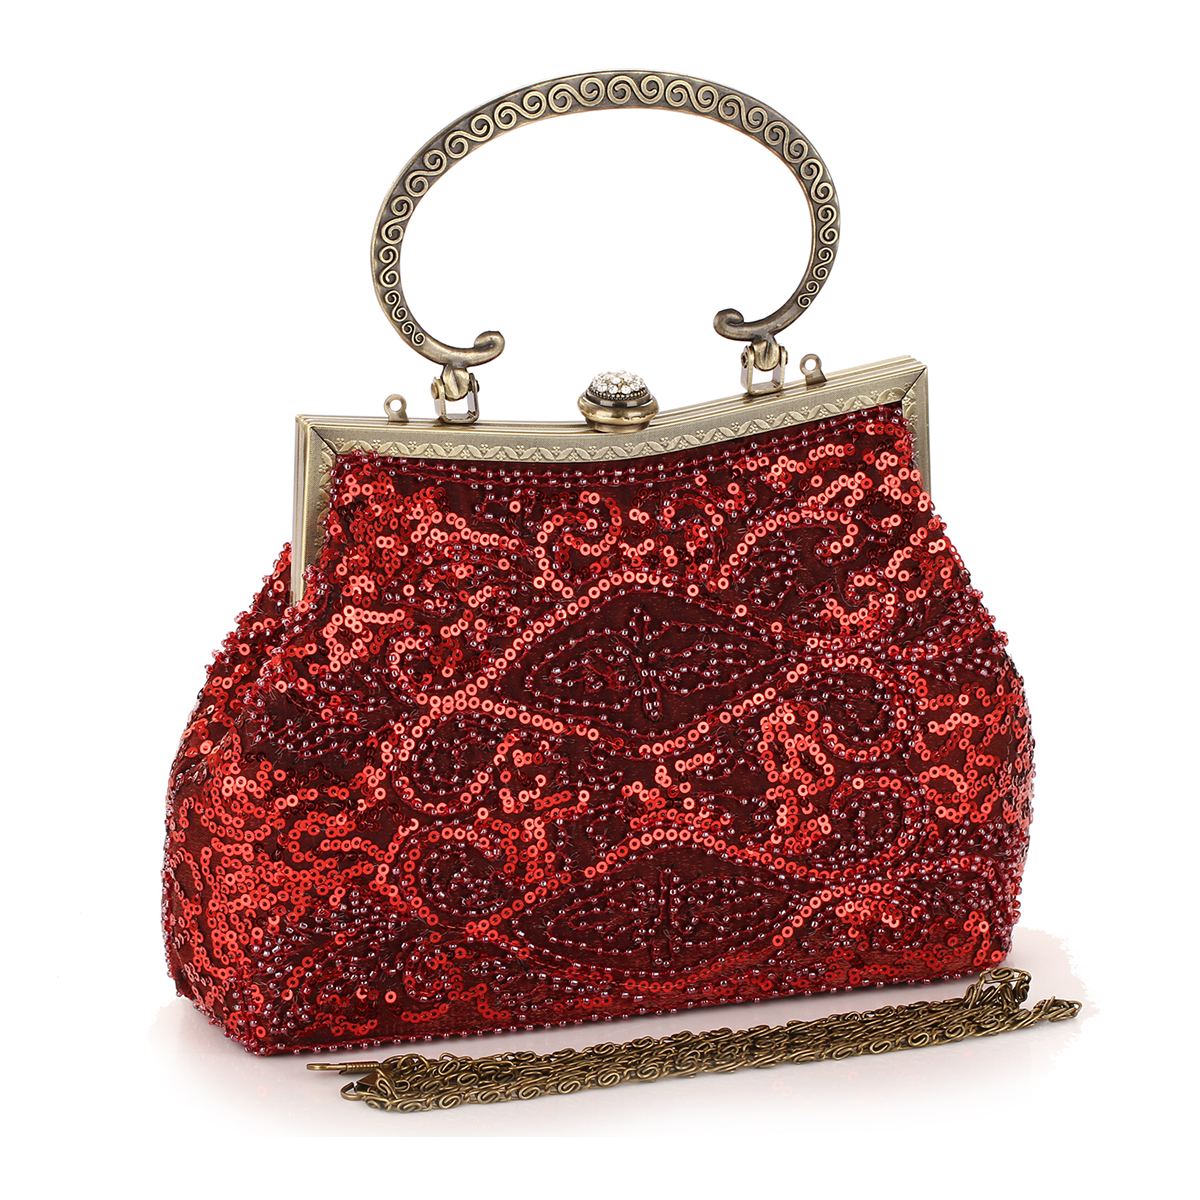 Small Handbags Pouch Purse Clutches Glitter Wedding Hobos Party Women Luxury Female Soft title=